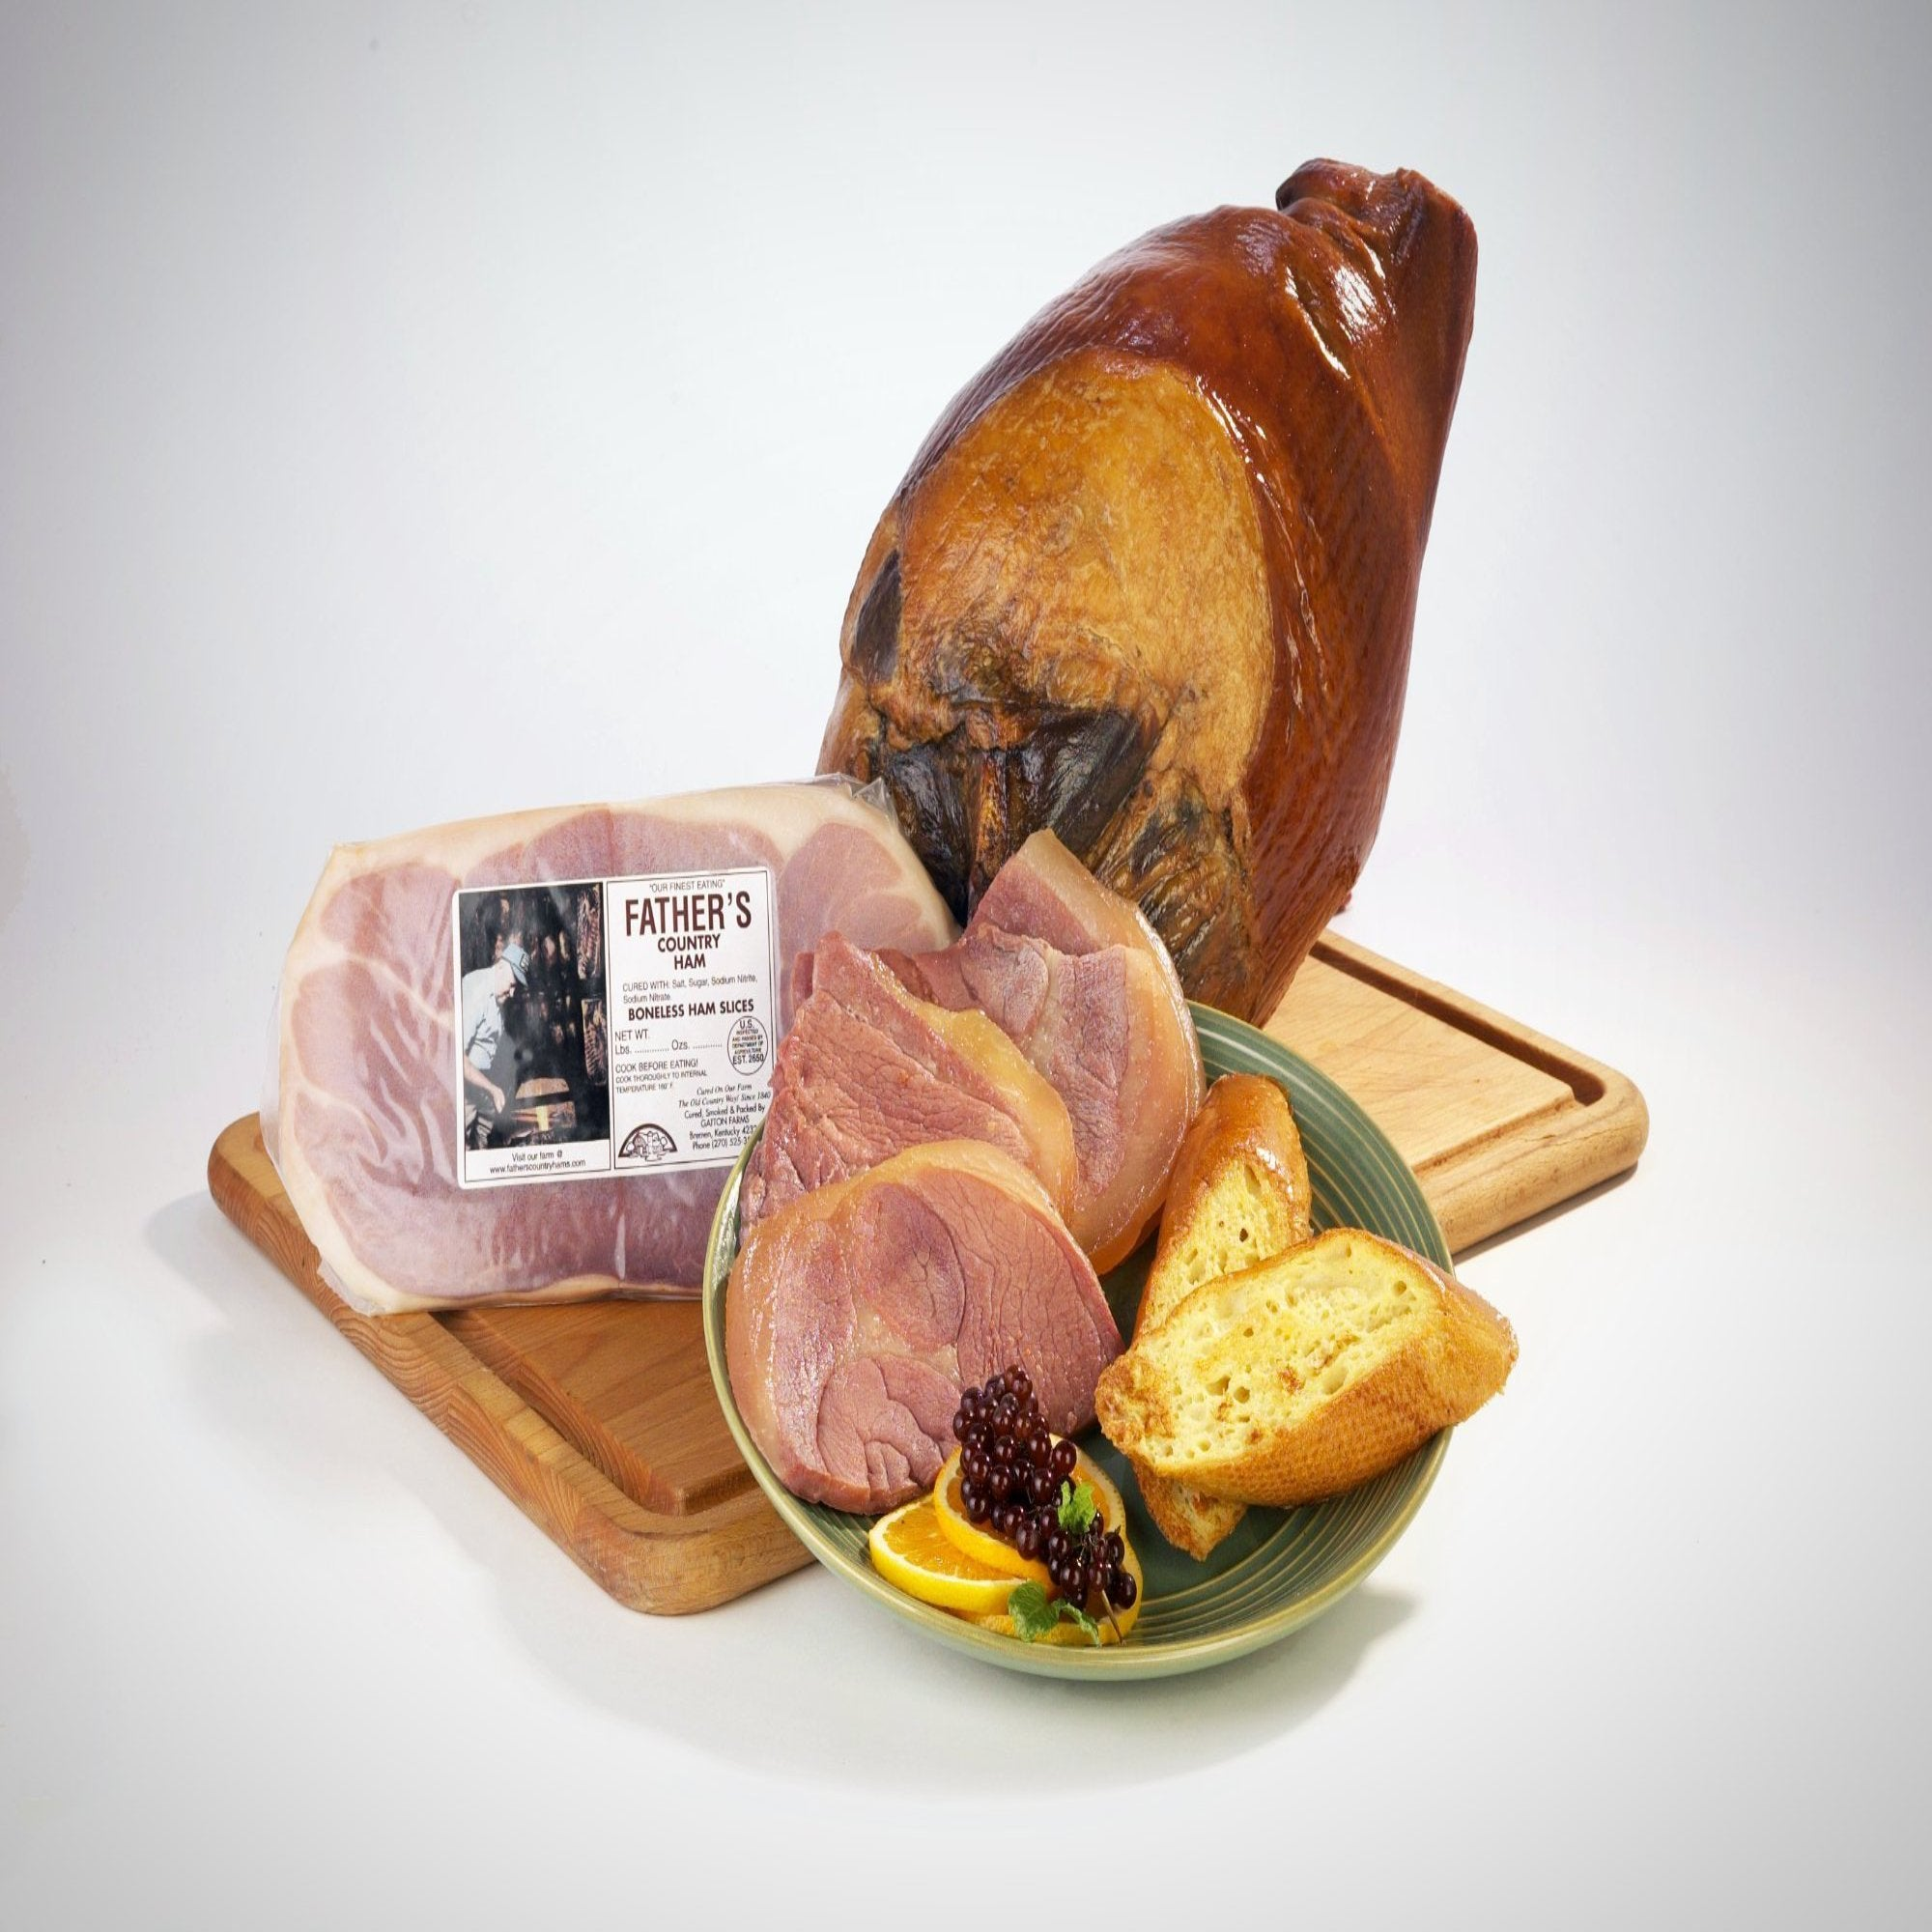 father s boneless country ham slices 1 lb package bh father s